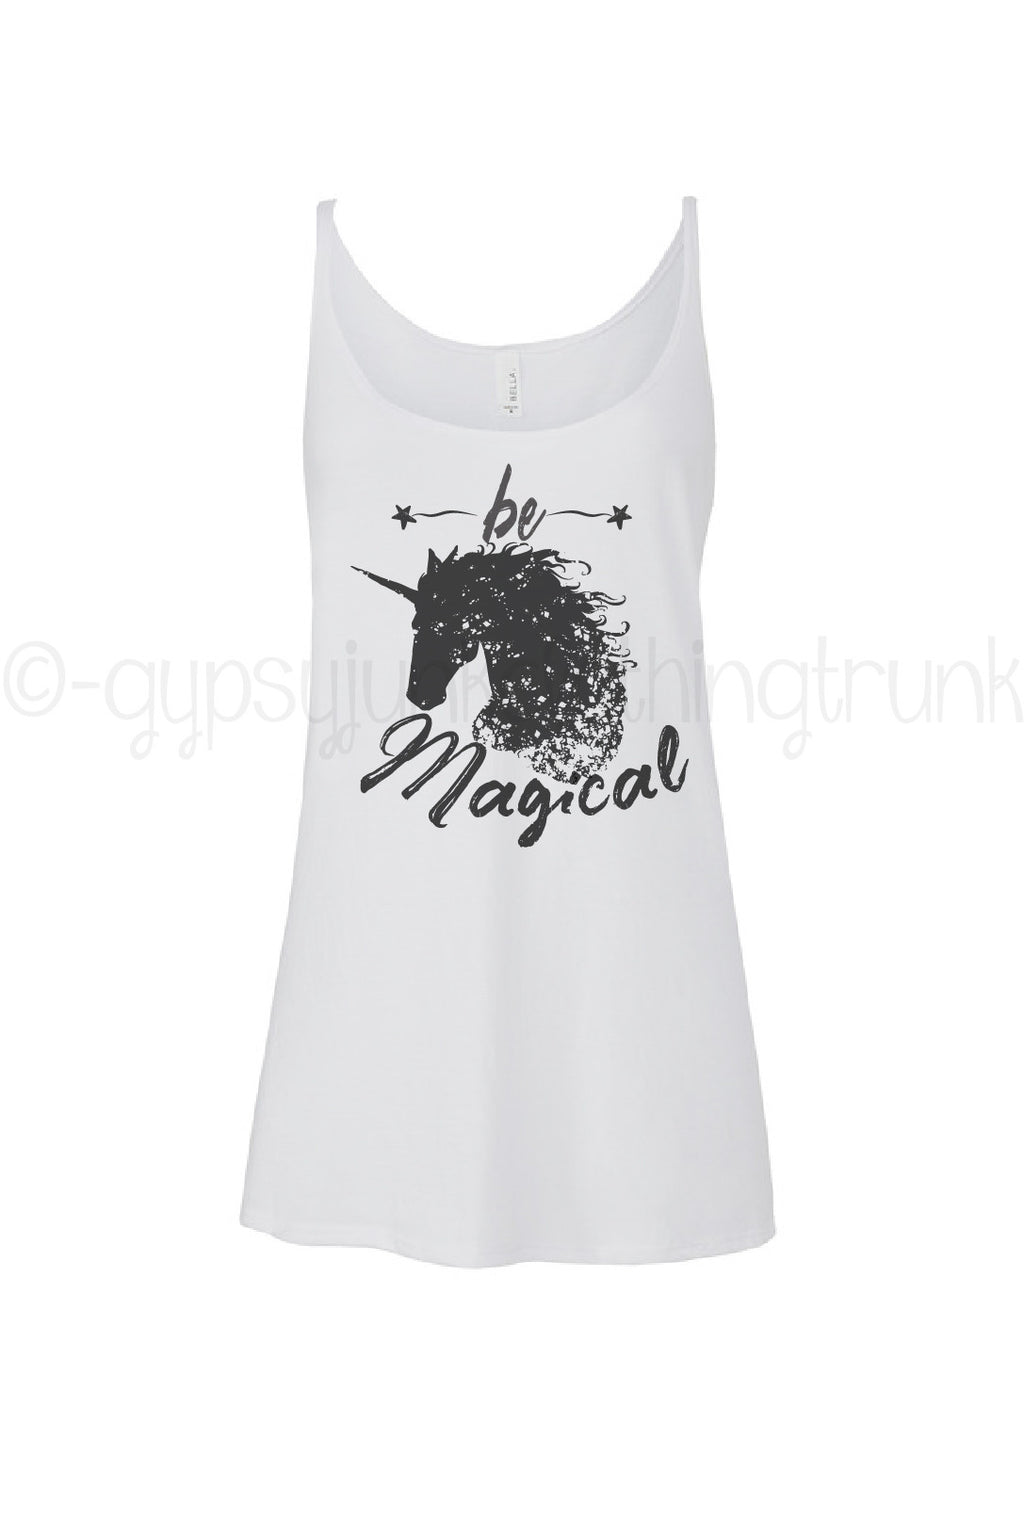 Unicorn Tank Top, Unicorn Shirt, Motivational Shirt, Boho Tank Top - Gypsy Junk Clothing Trunk